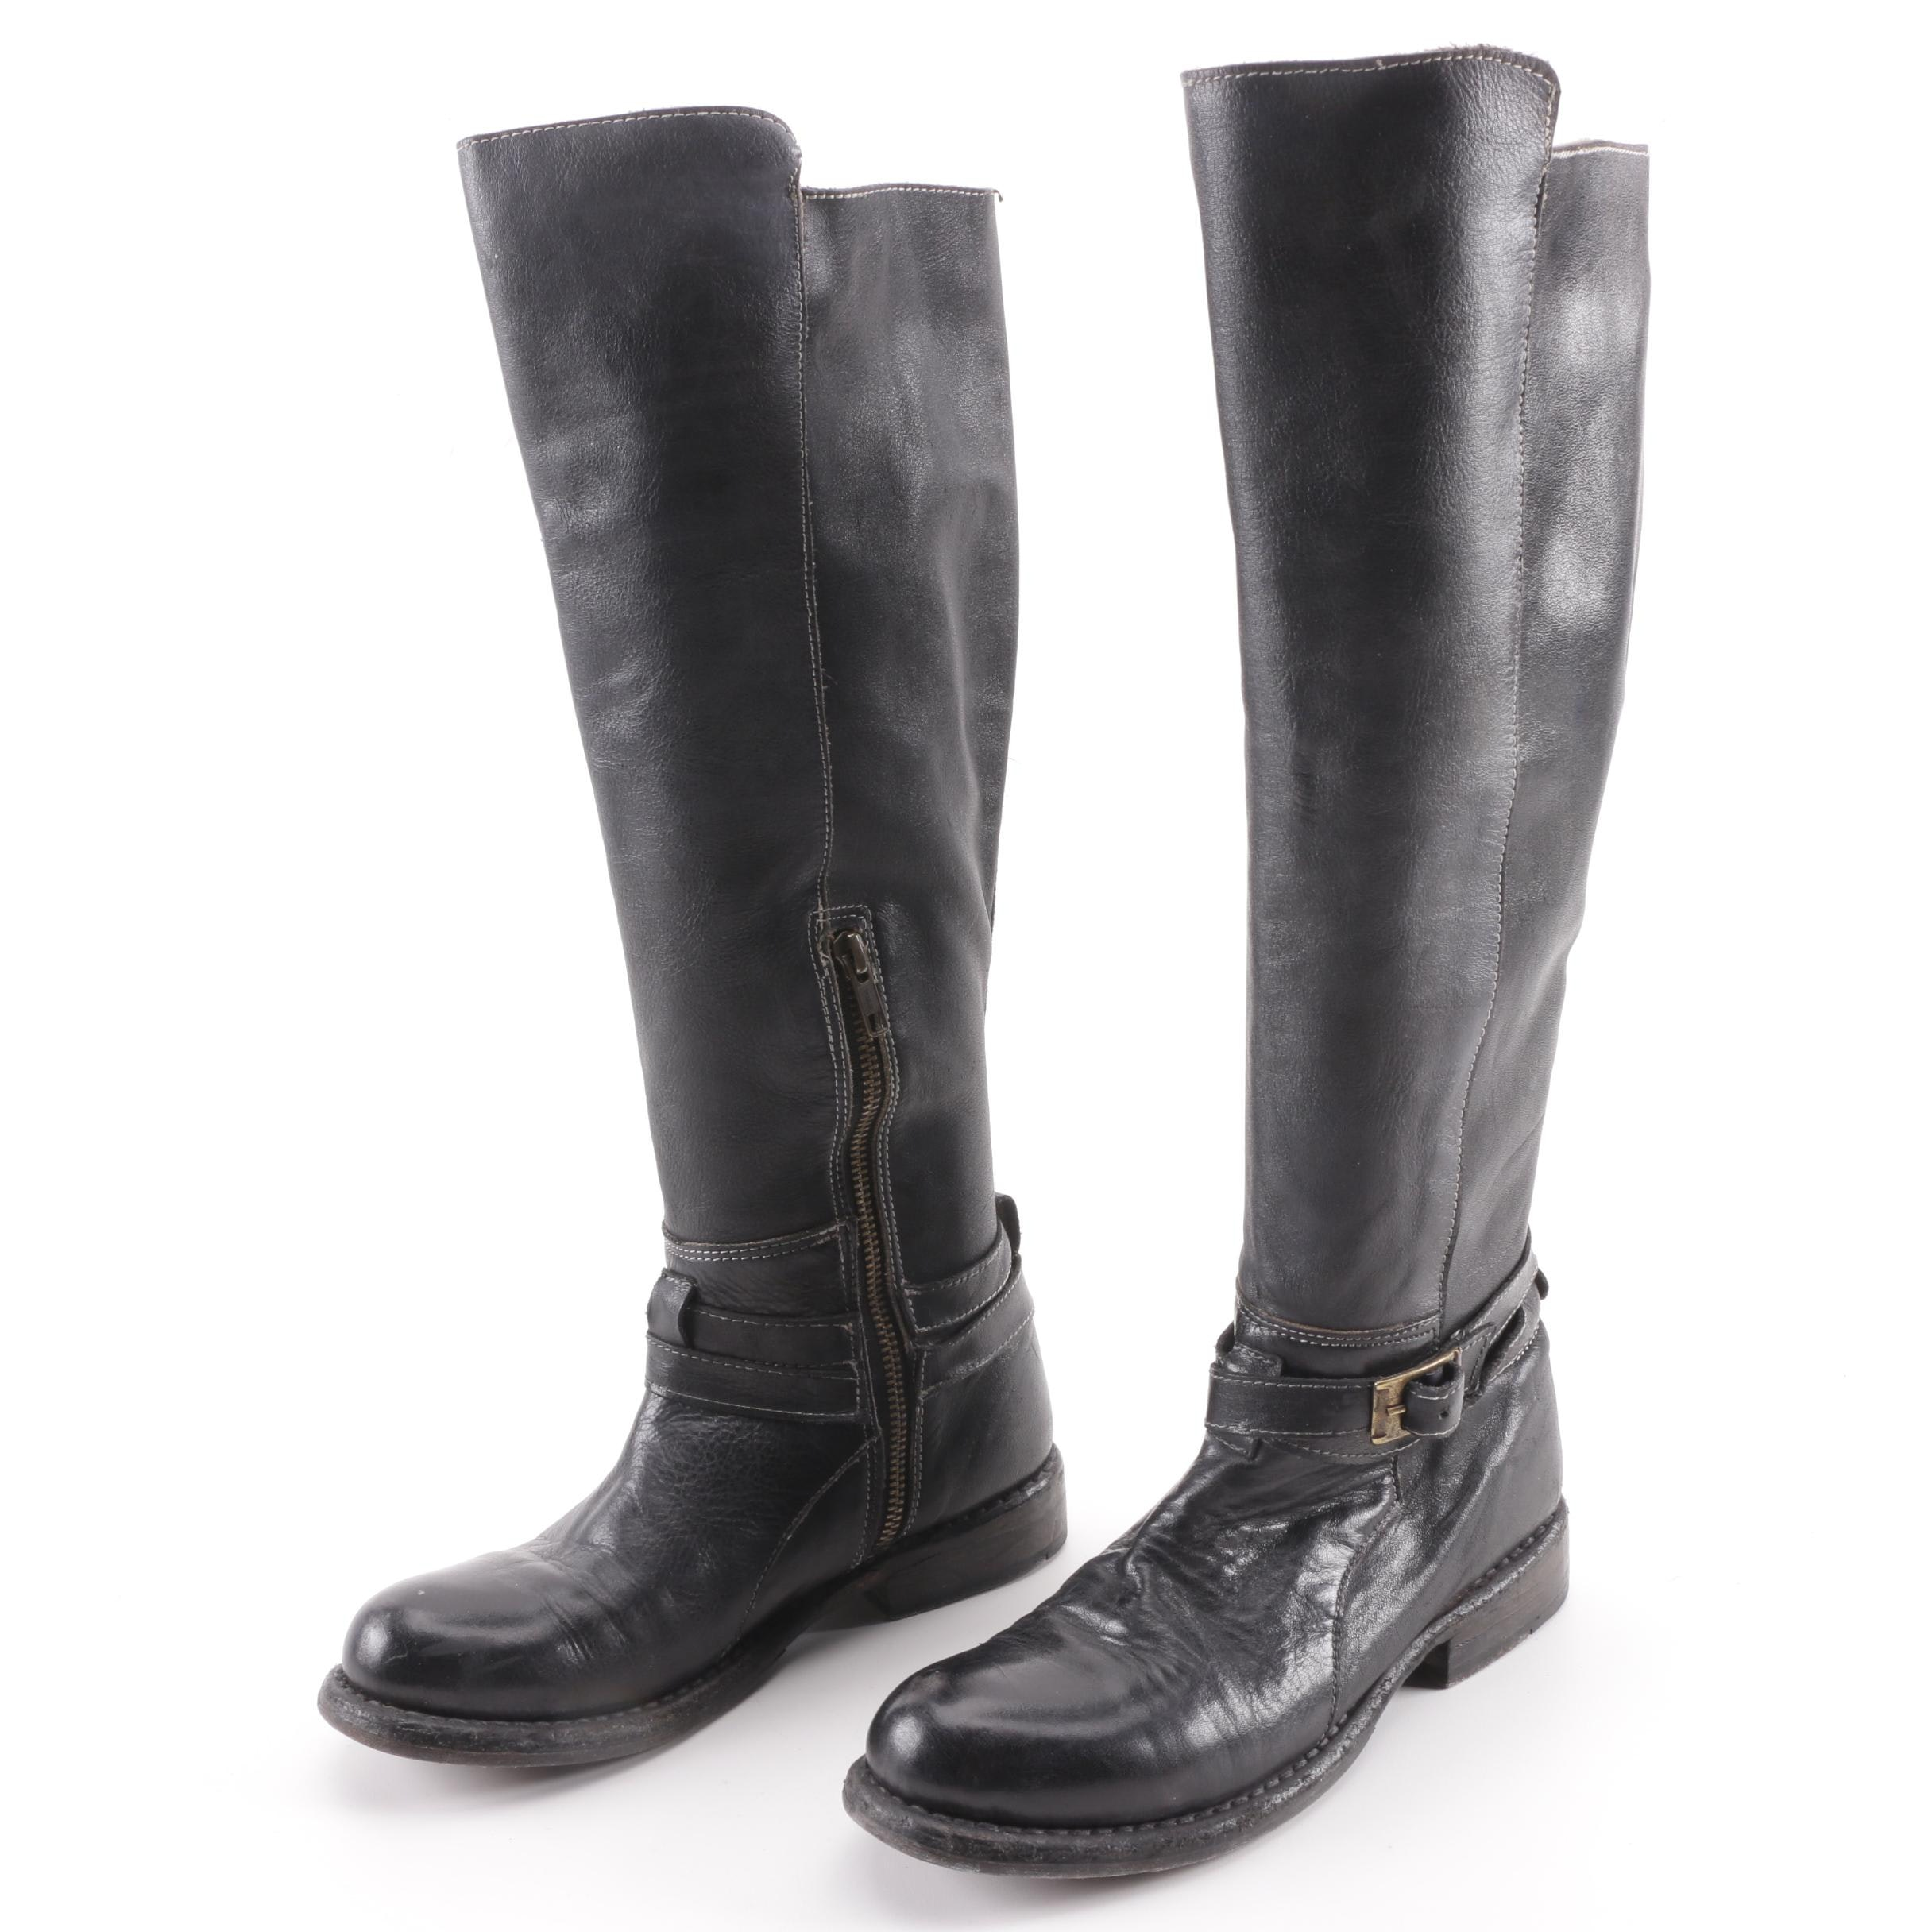 Women's Bed Stü Black Leather Knee-Length Boots with Ankle Strap Accents